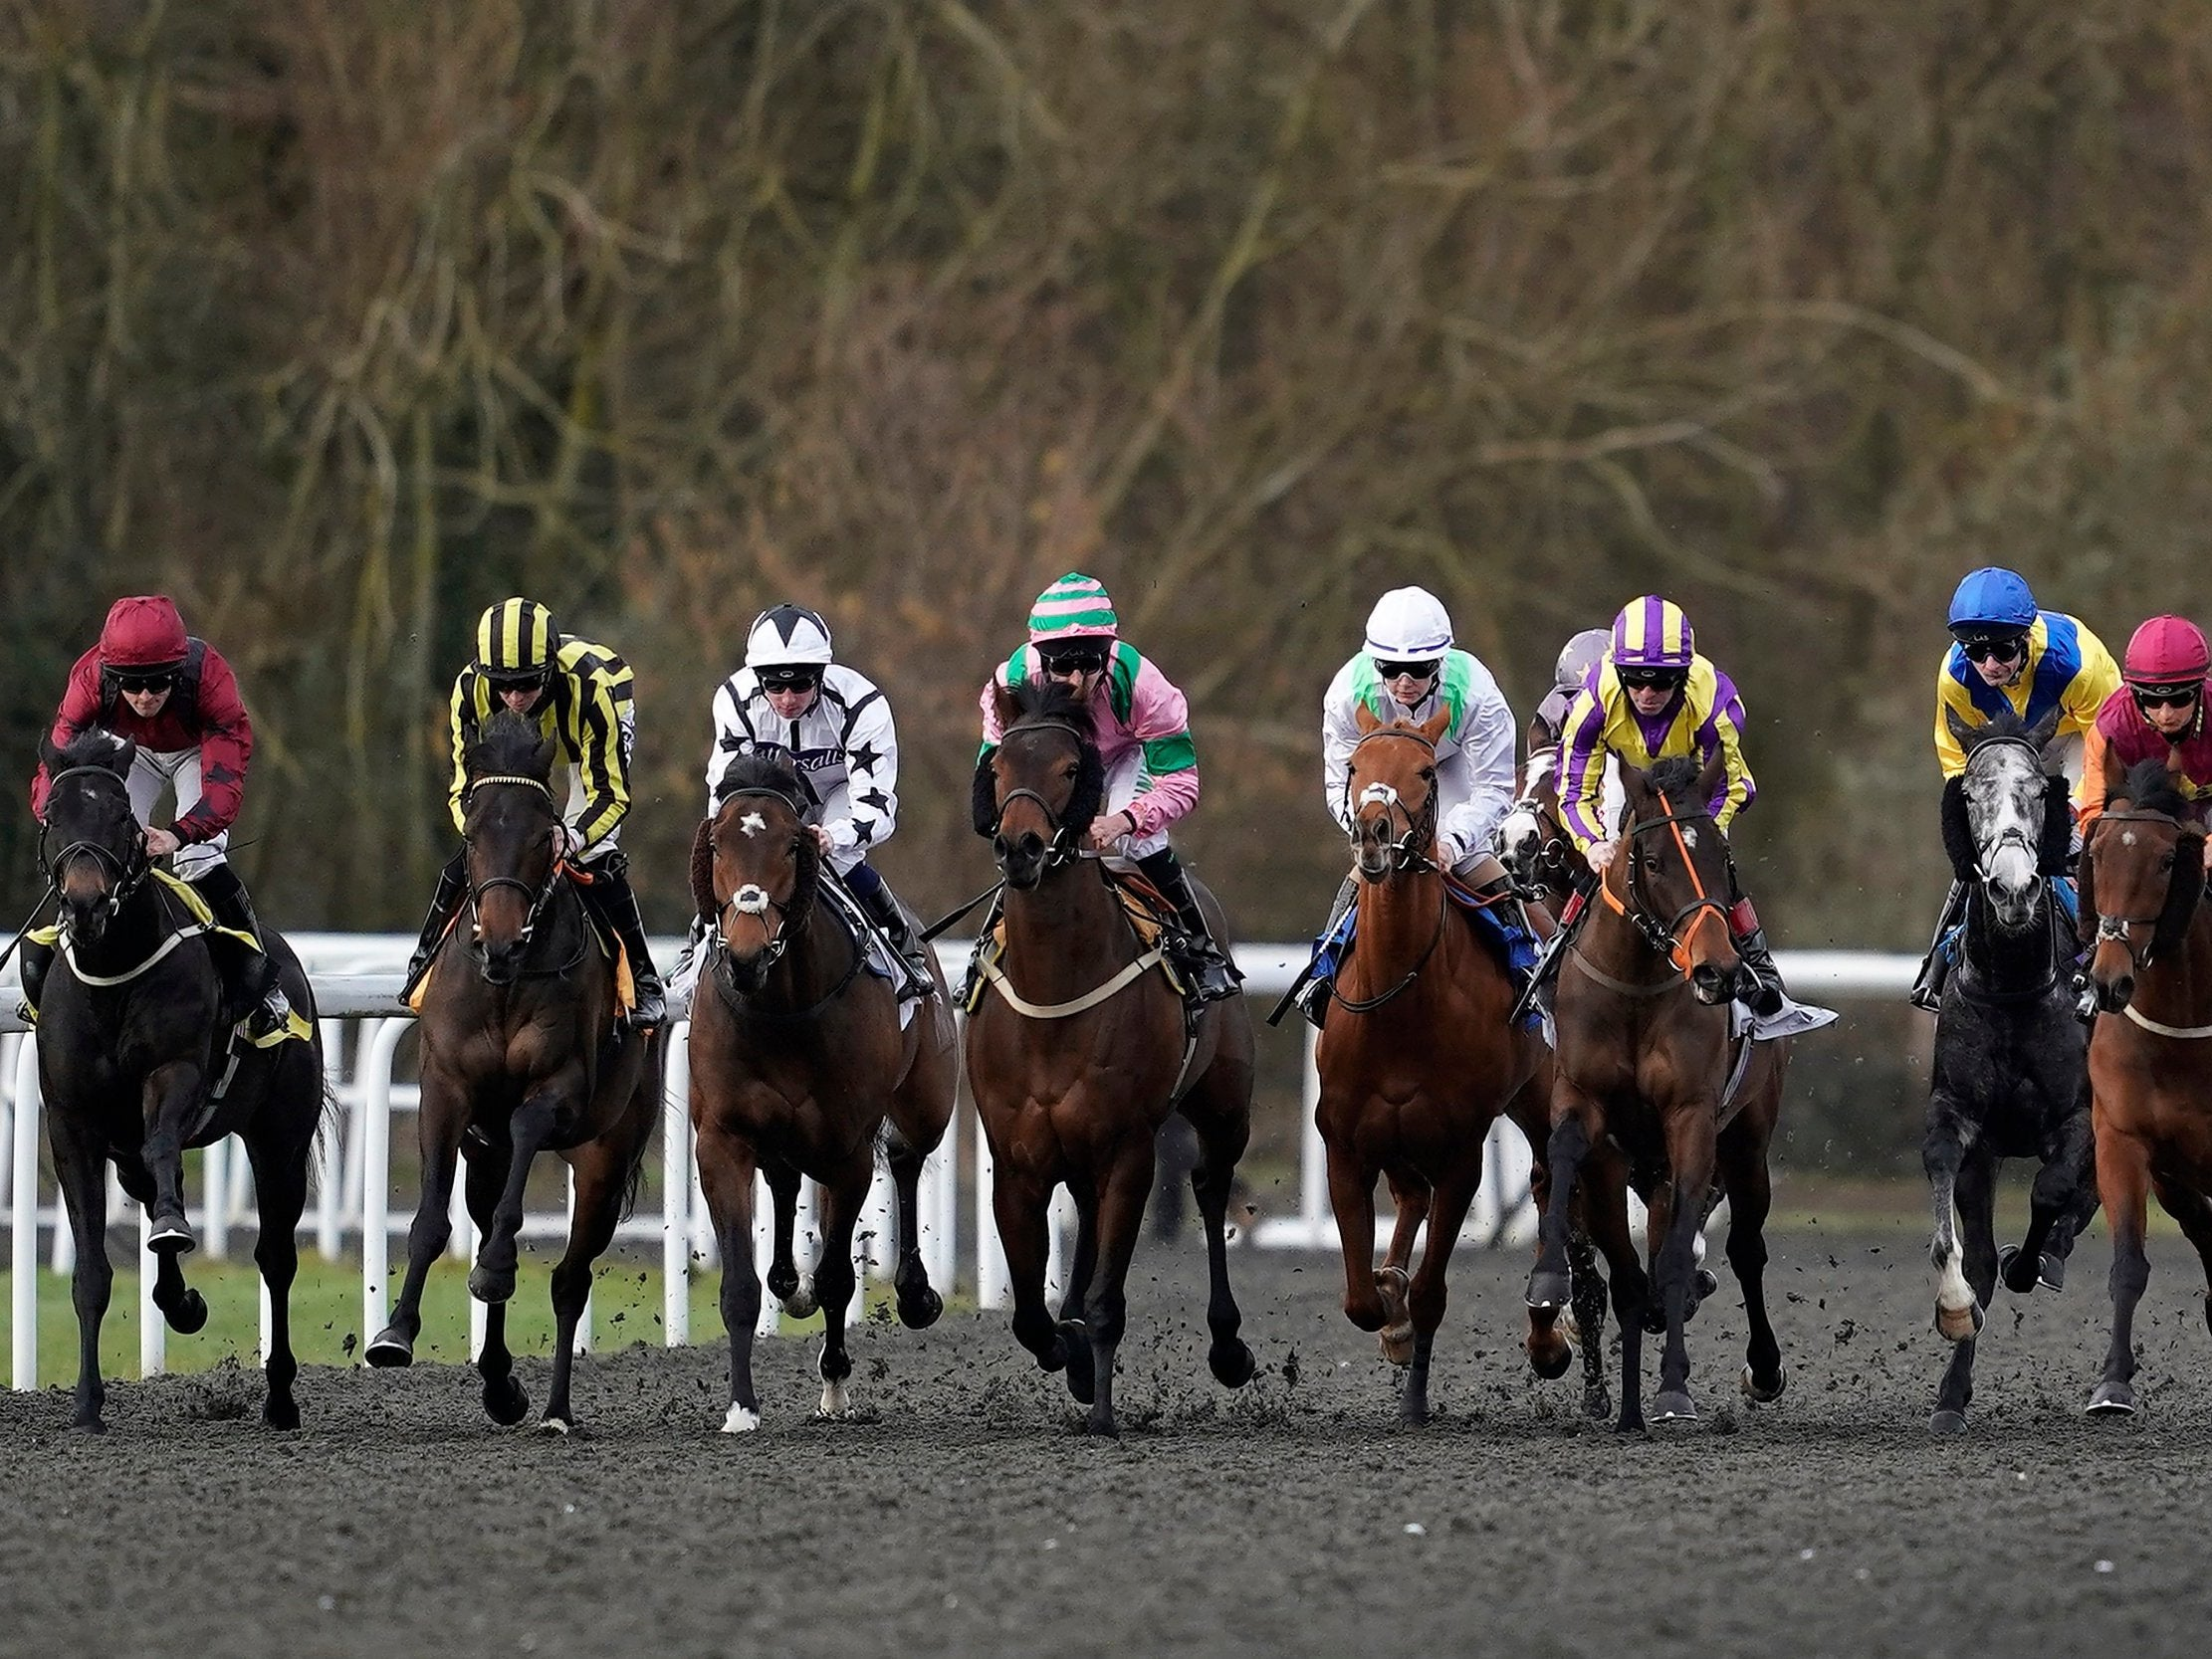 Equine Flu: Horse Racing Today Cancelled After Outbreak Of Equine Flu